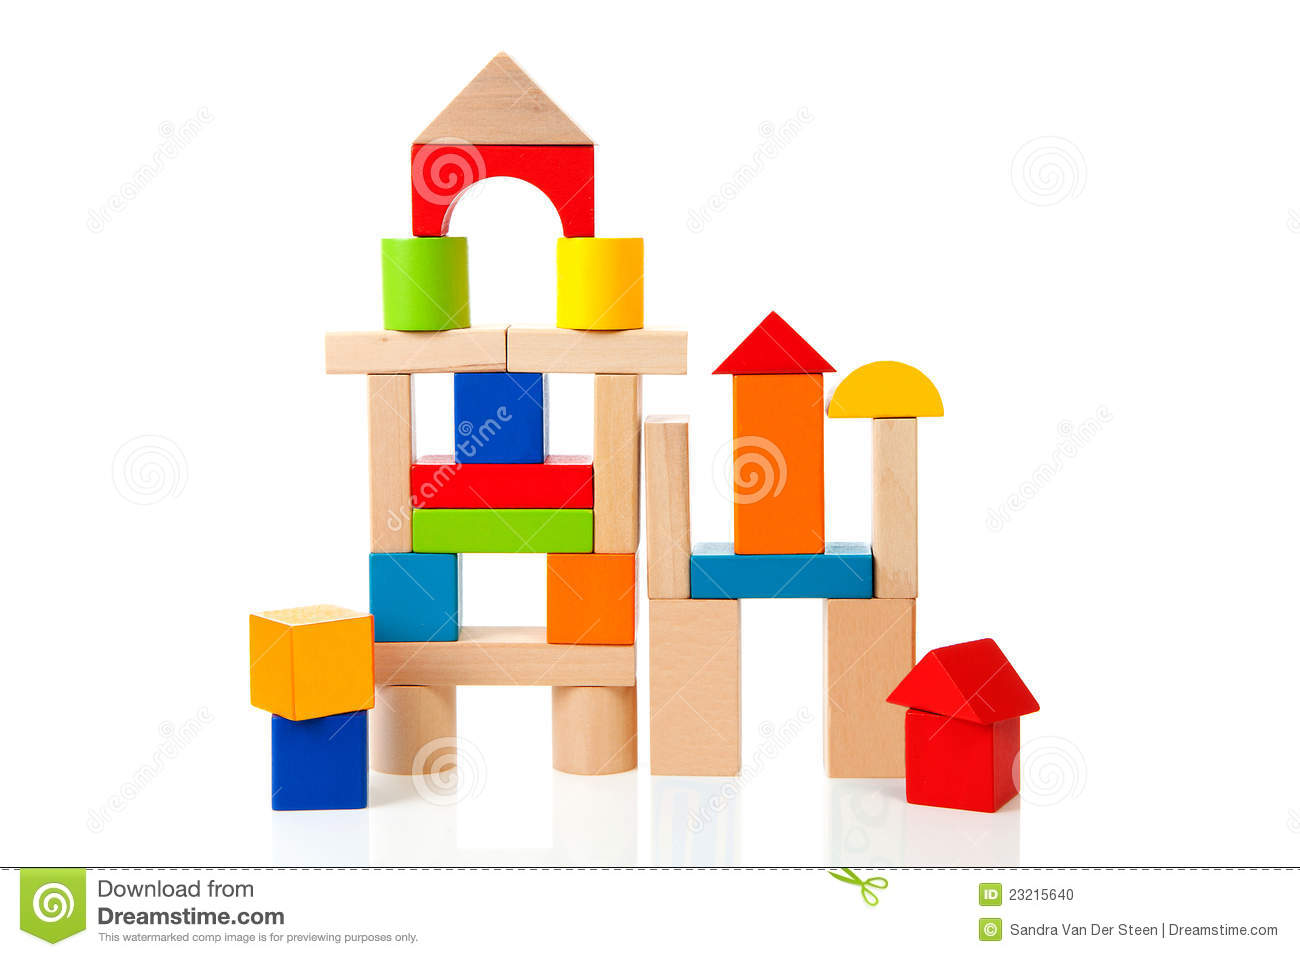 Building a house with wooden blocks clipart png freeuse download Wooden Blocks Clipart - Clipart Kid png freeuse download